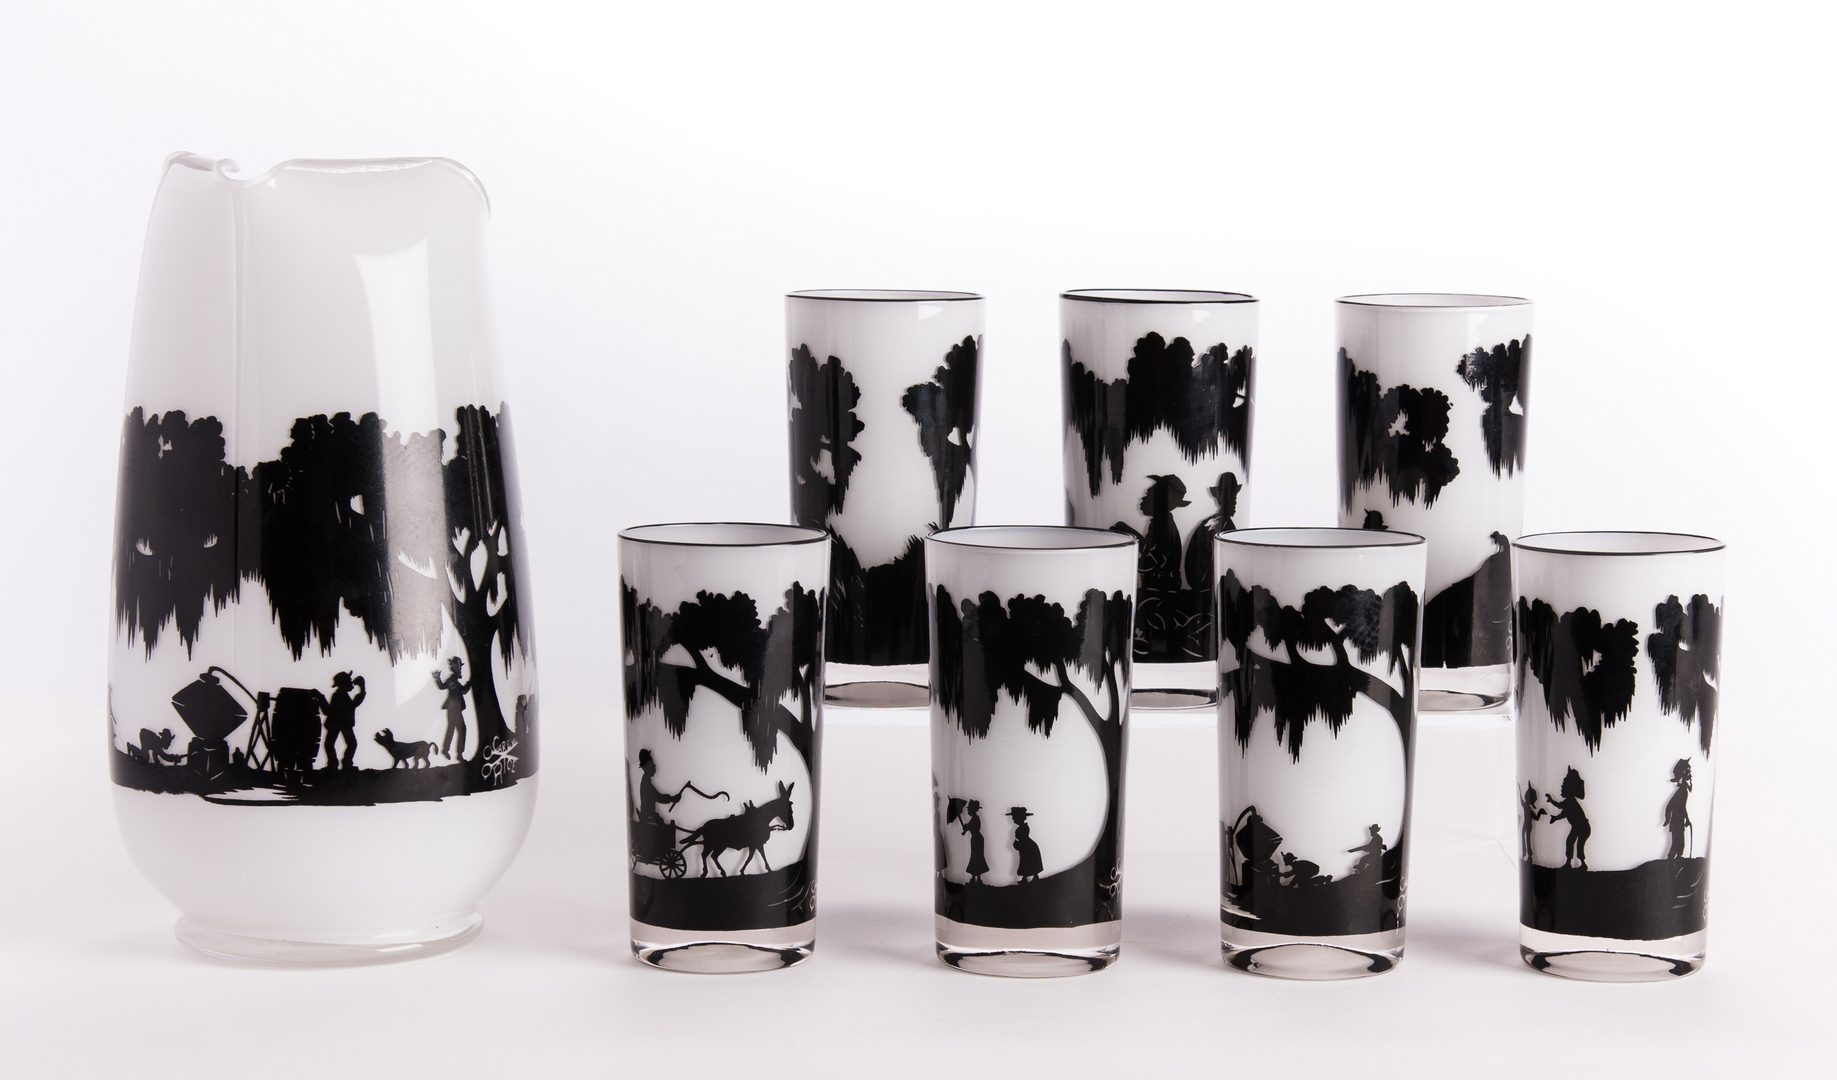 Lot 14: Carew Rice Silhouette Pitcher & 7 Glasses